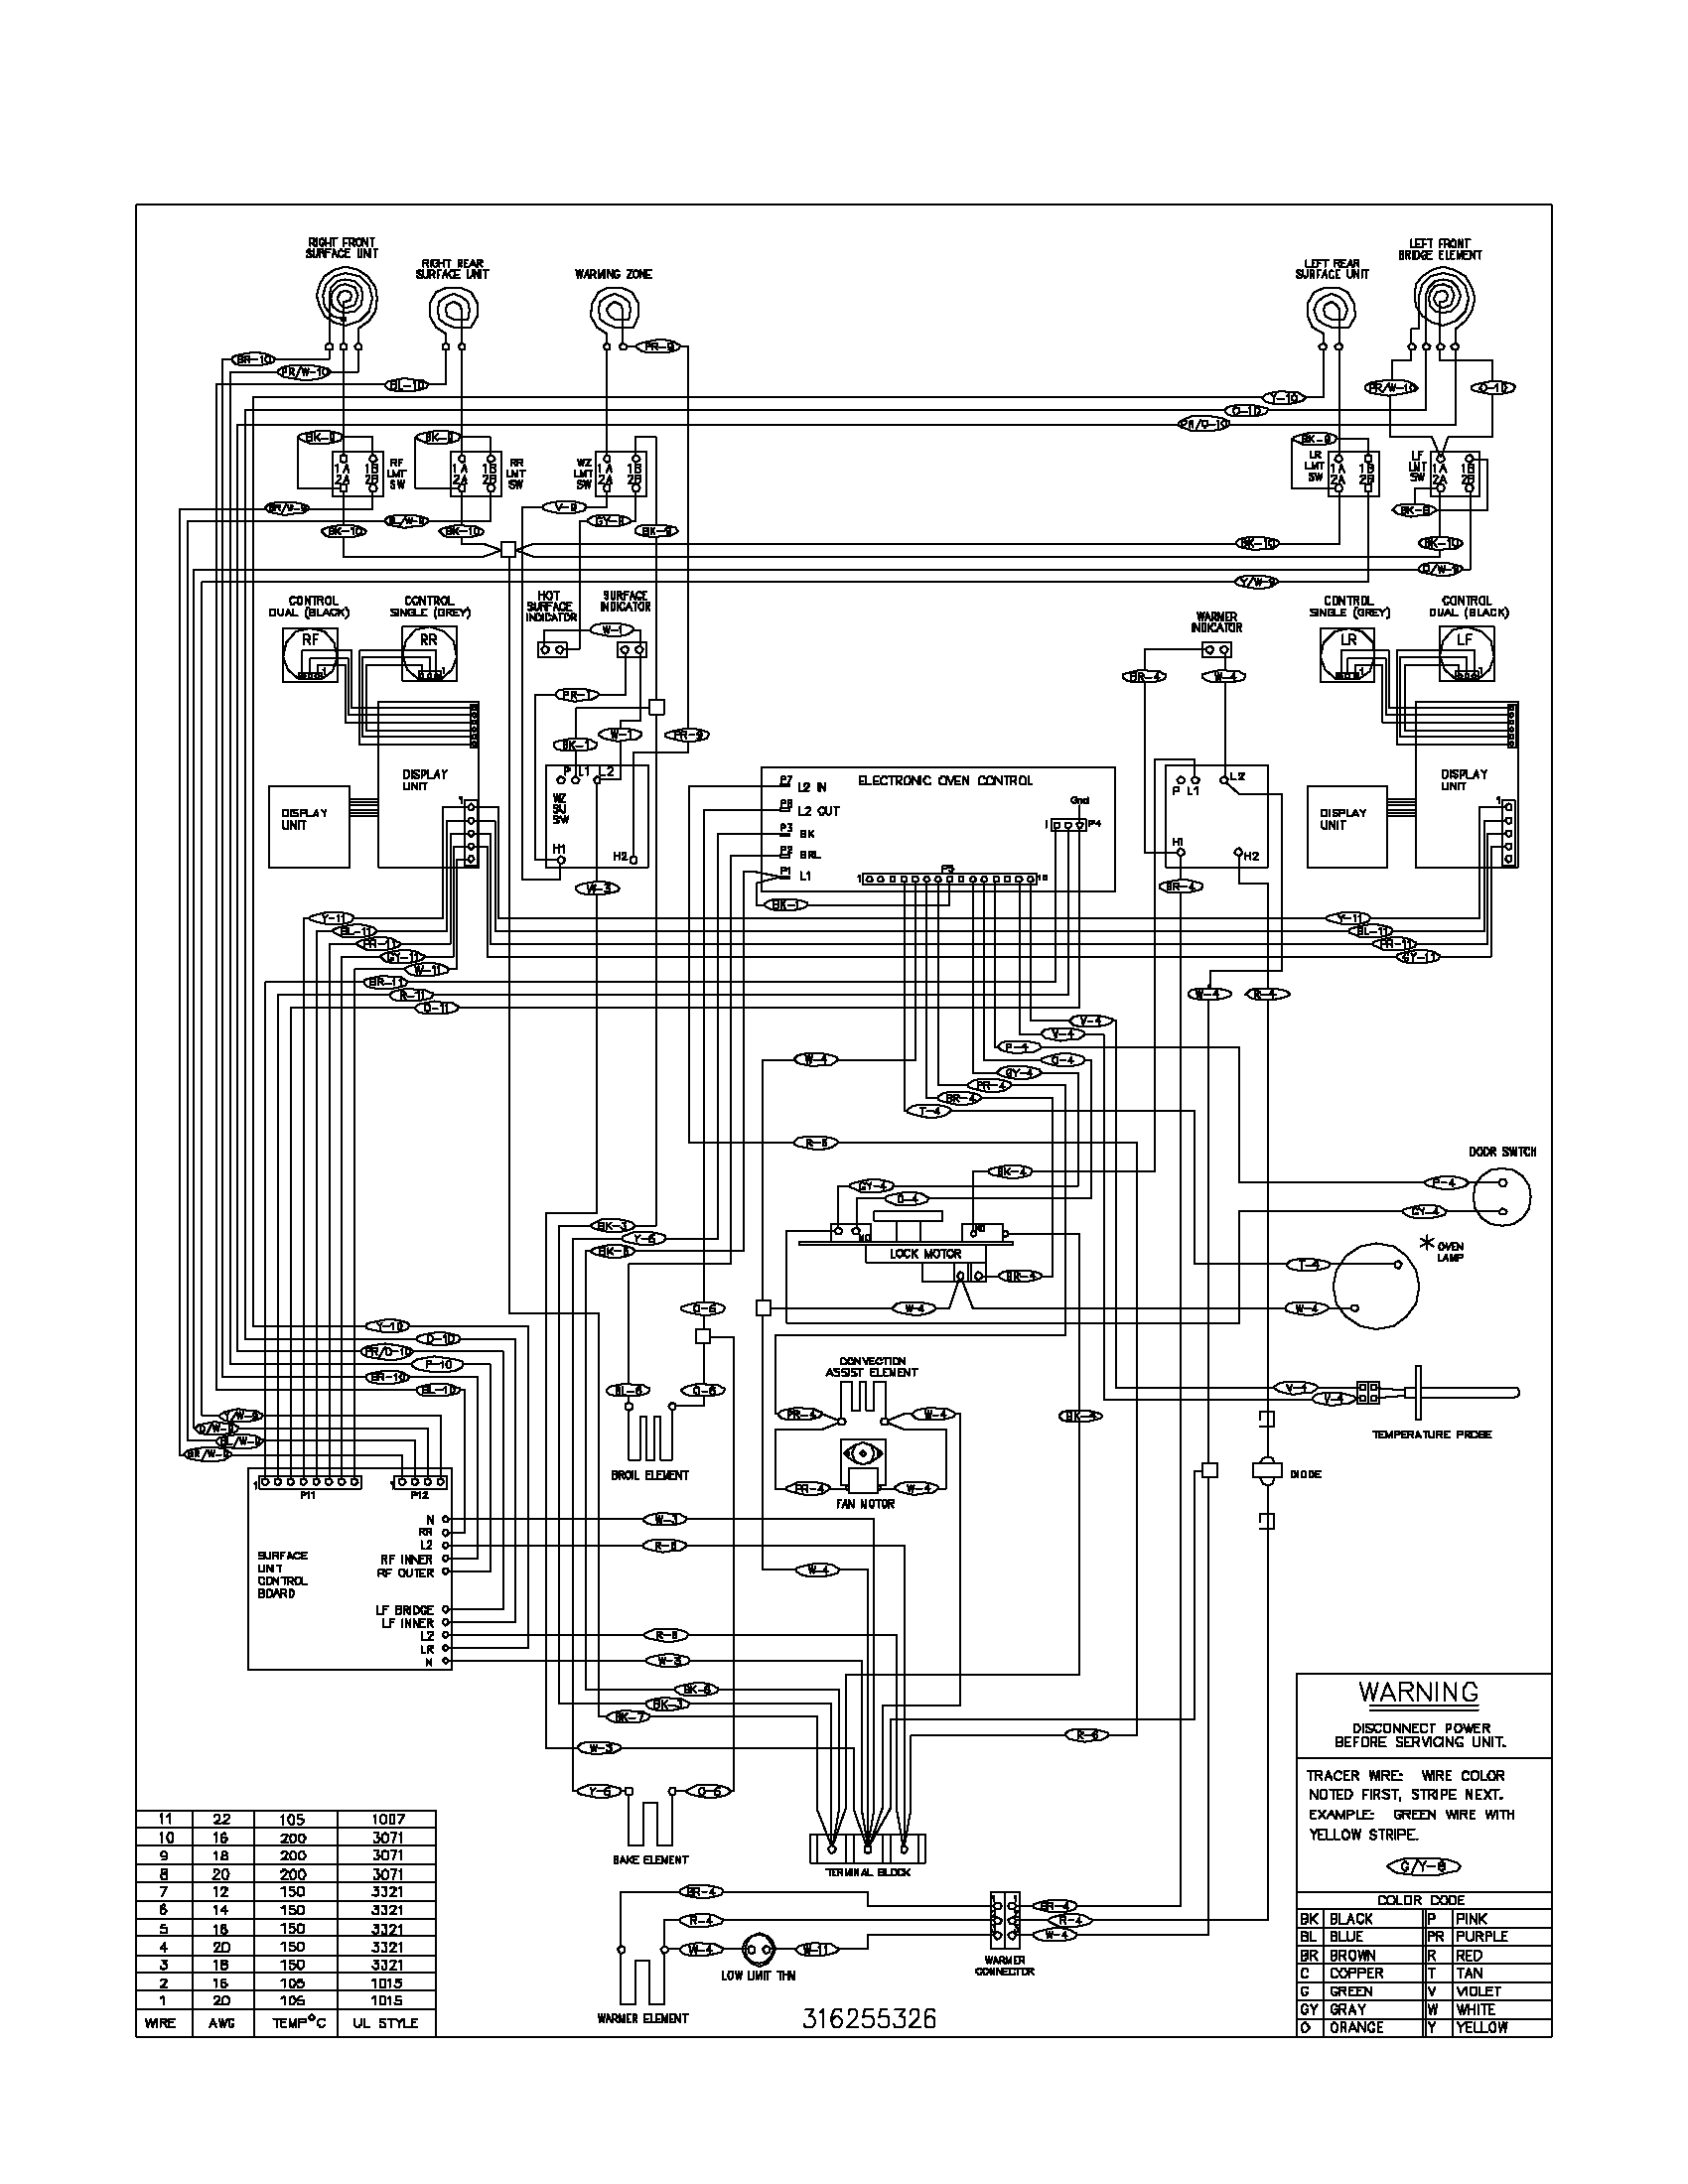 wiring diagram parts frigidaire stove wiring diagram frigidaire washer wiring diagram frigidaire wiring diagram at honlapkeszites.co